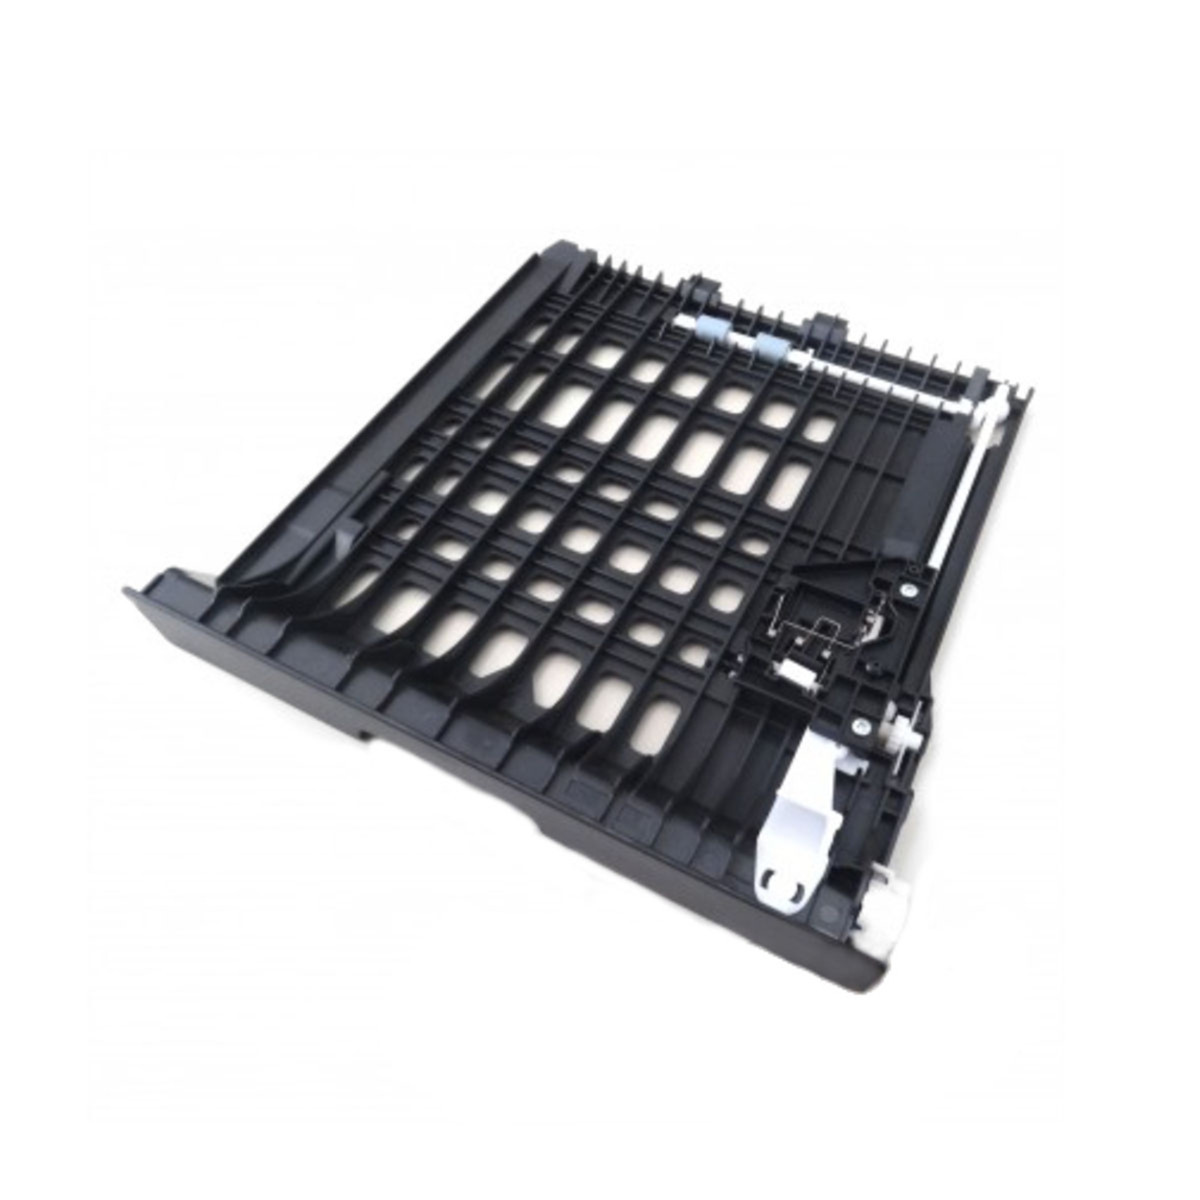 Bandeja Duplex Brother para DCP-8112DN DCP-8152DN MFC-8952DW DCP-8157DN | LY5837001